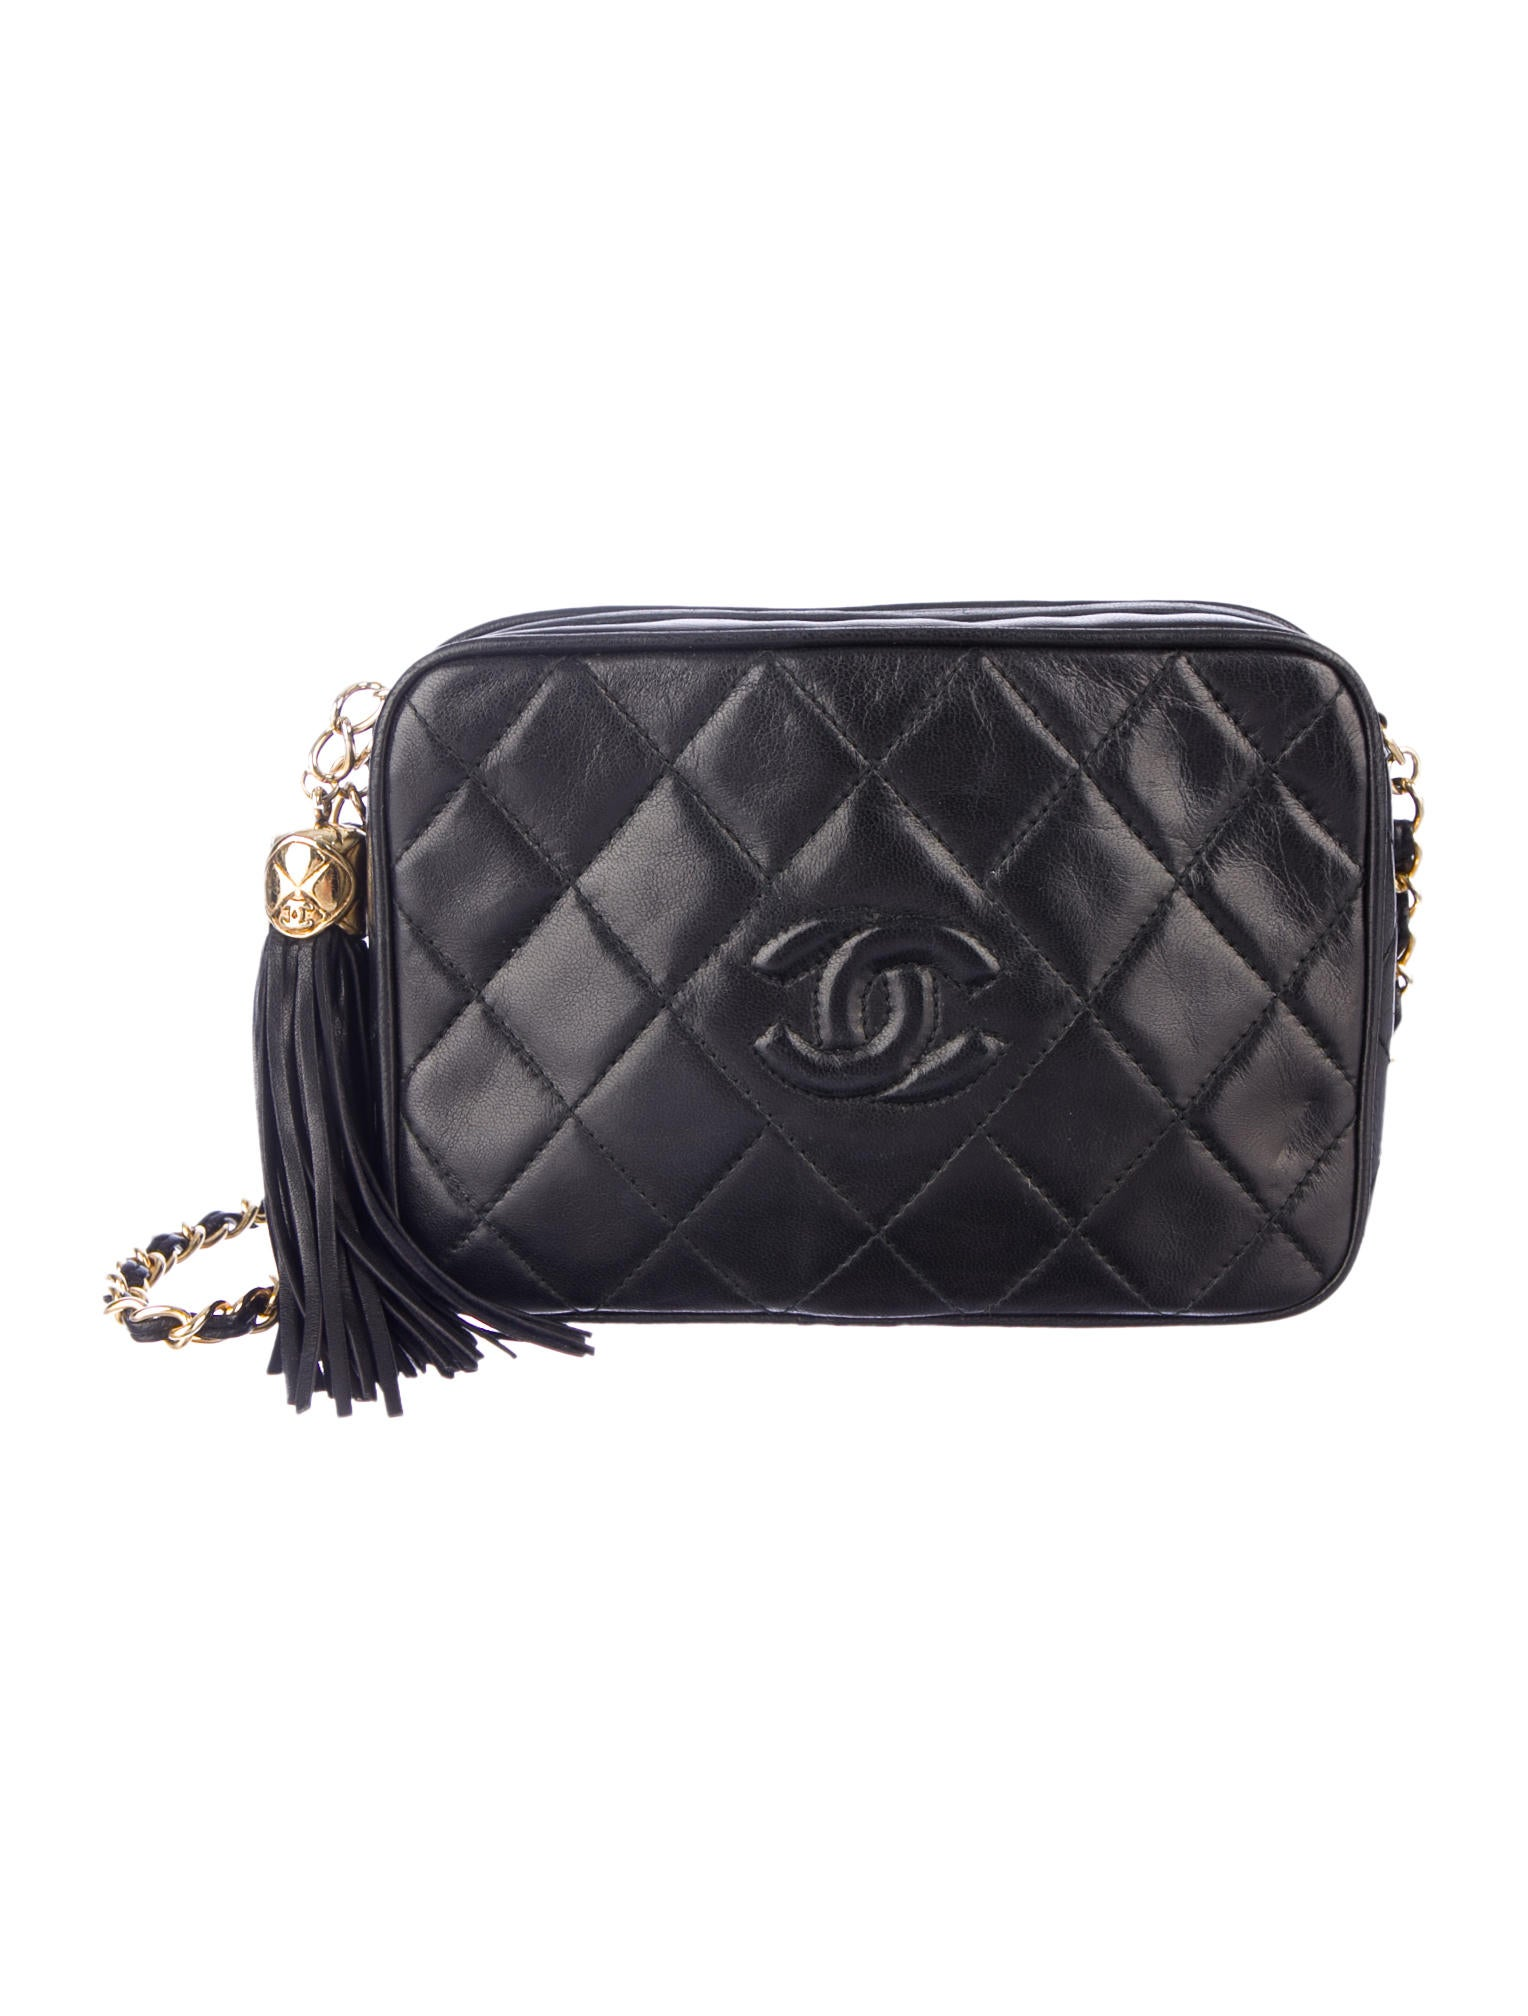 11cd6e3ae4f46 Where To Buy Vintage Chanel Bags In Nyc